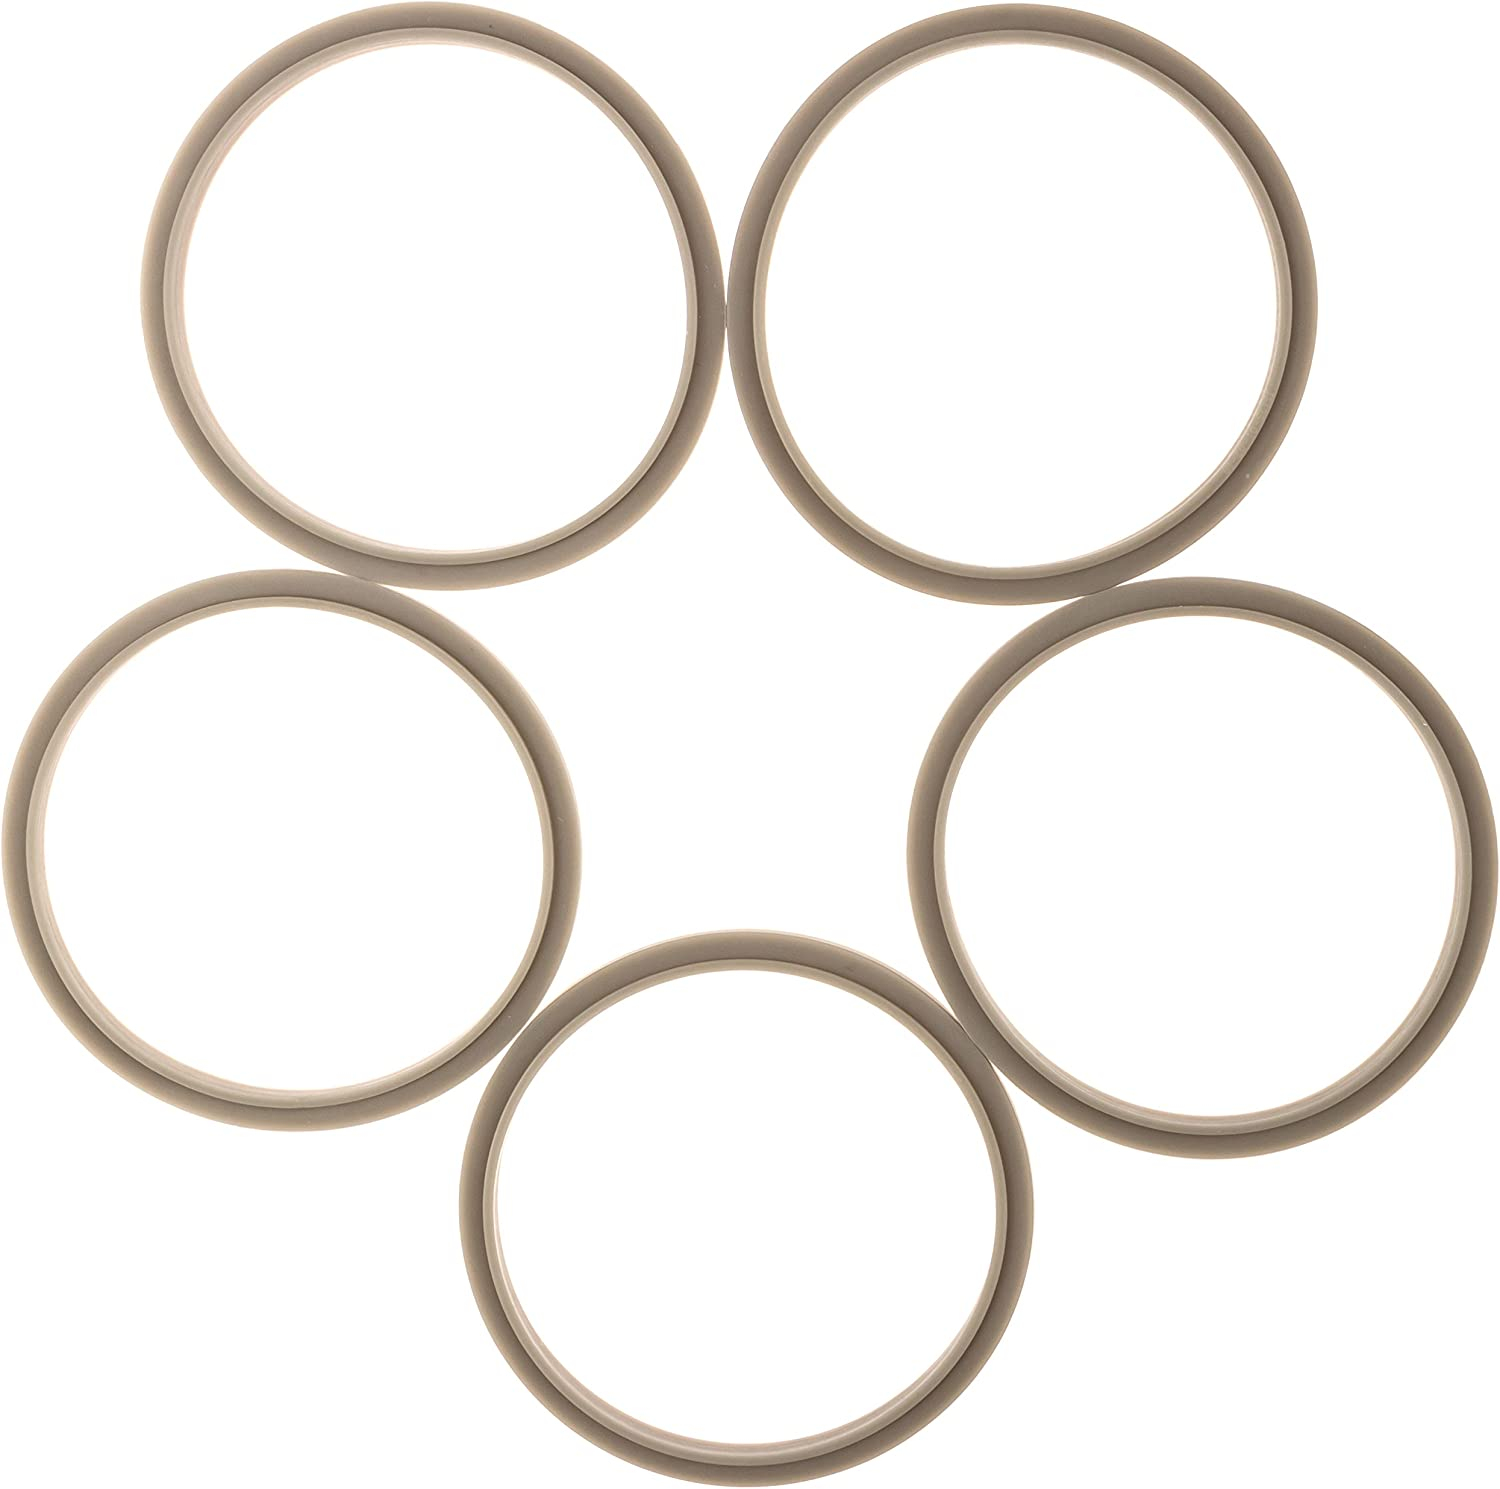 Pack of 3 Nutribullet Seal Ring Gaskets with Lip Gasket for Nutribullet 600//900 Series NutriBullet Replacement Parts /& Accessories